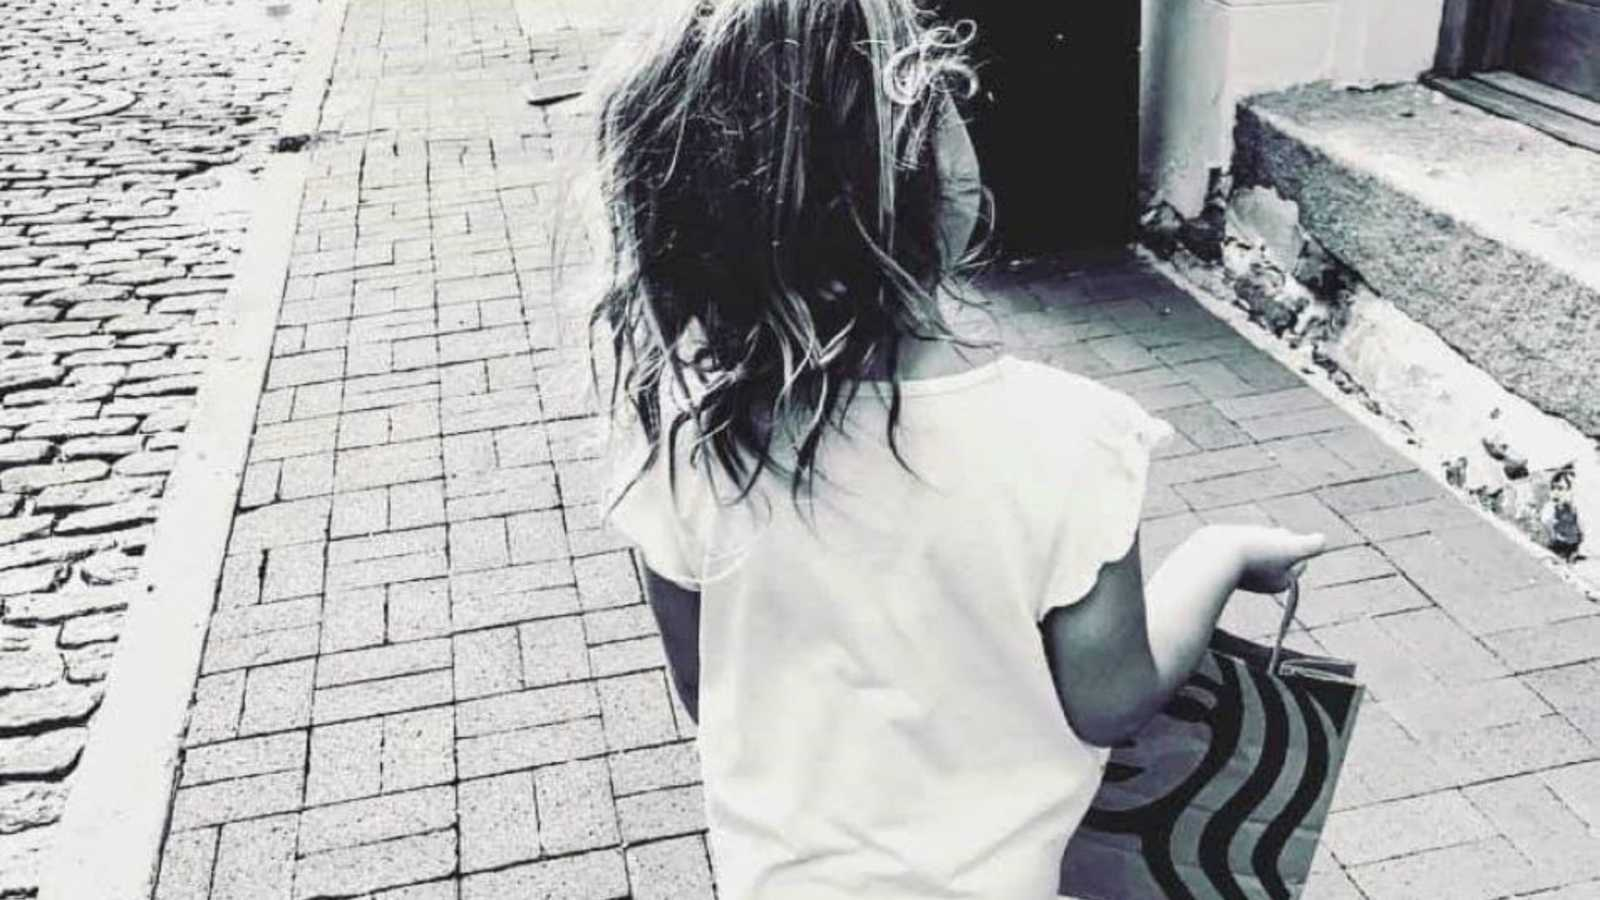 Mom snaps a photo of her daughter walking down the sidewalk while carrying a Starbucks bag